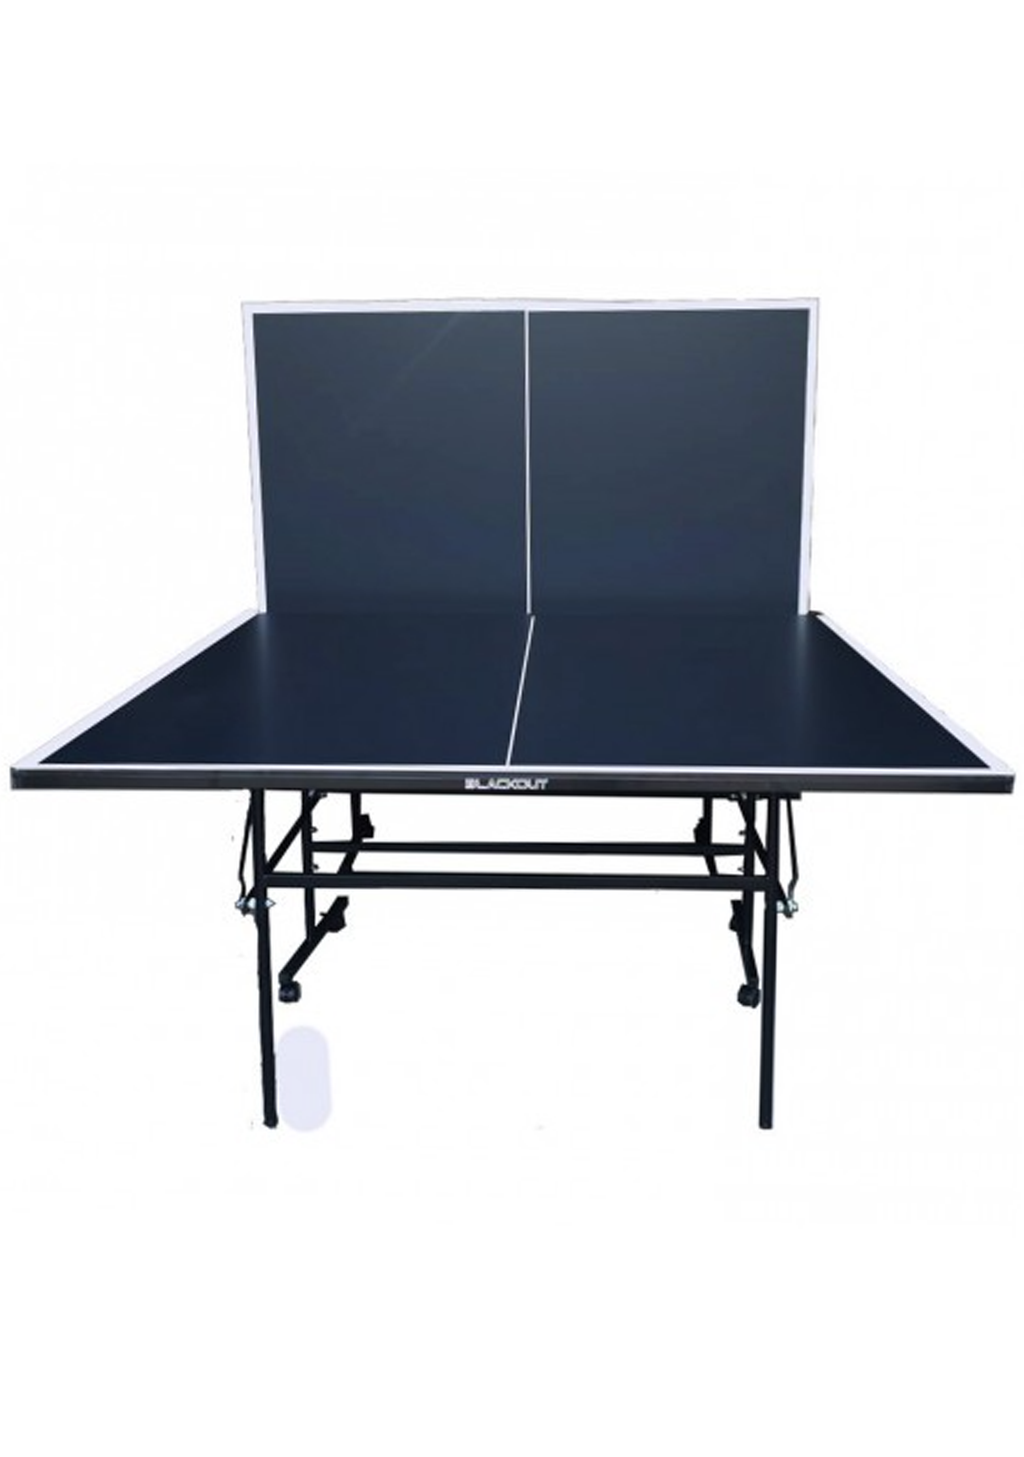 FIREFOX WINNER TABLE TENNIS TABLE <br> FFWINNER BLACKOUT